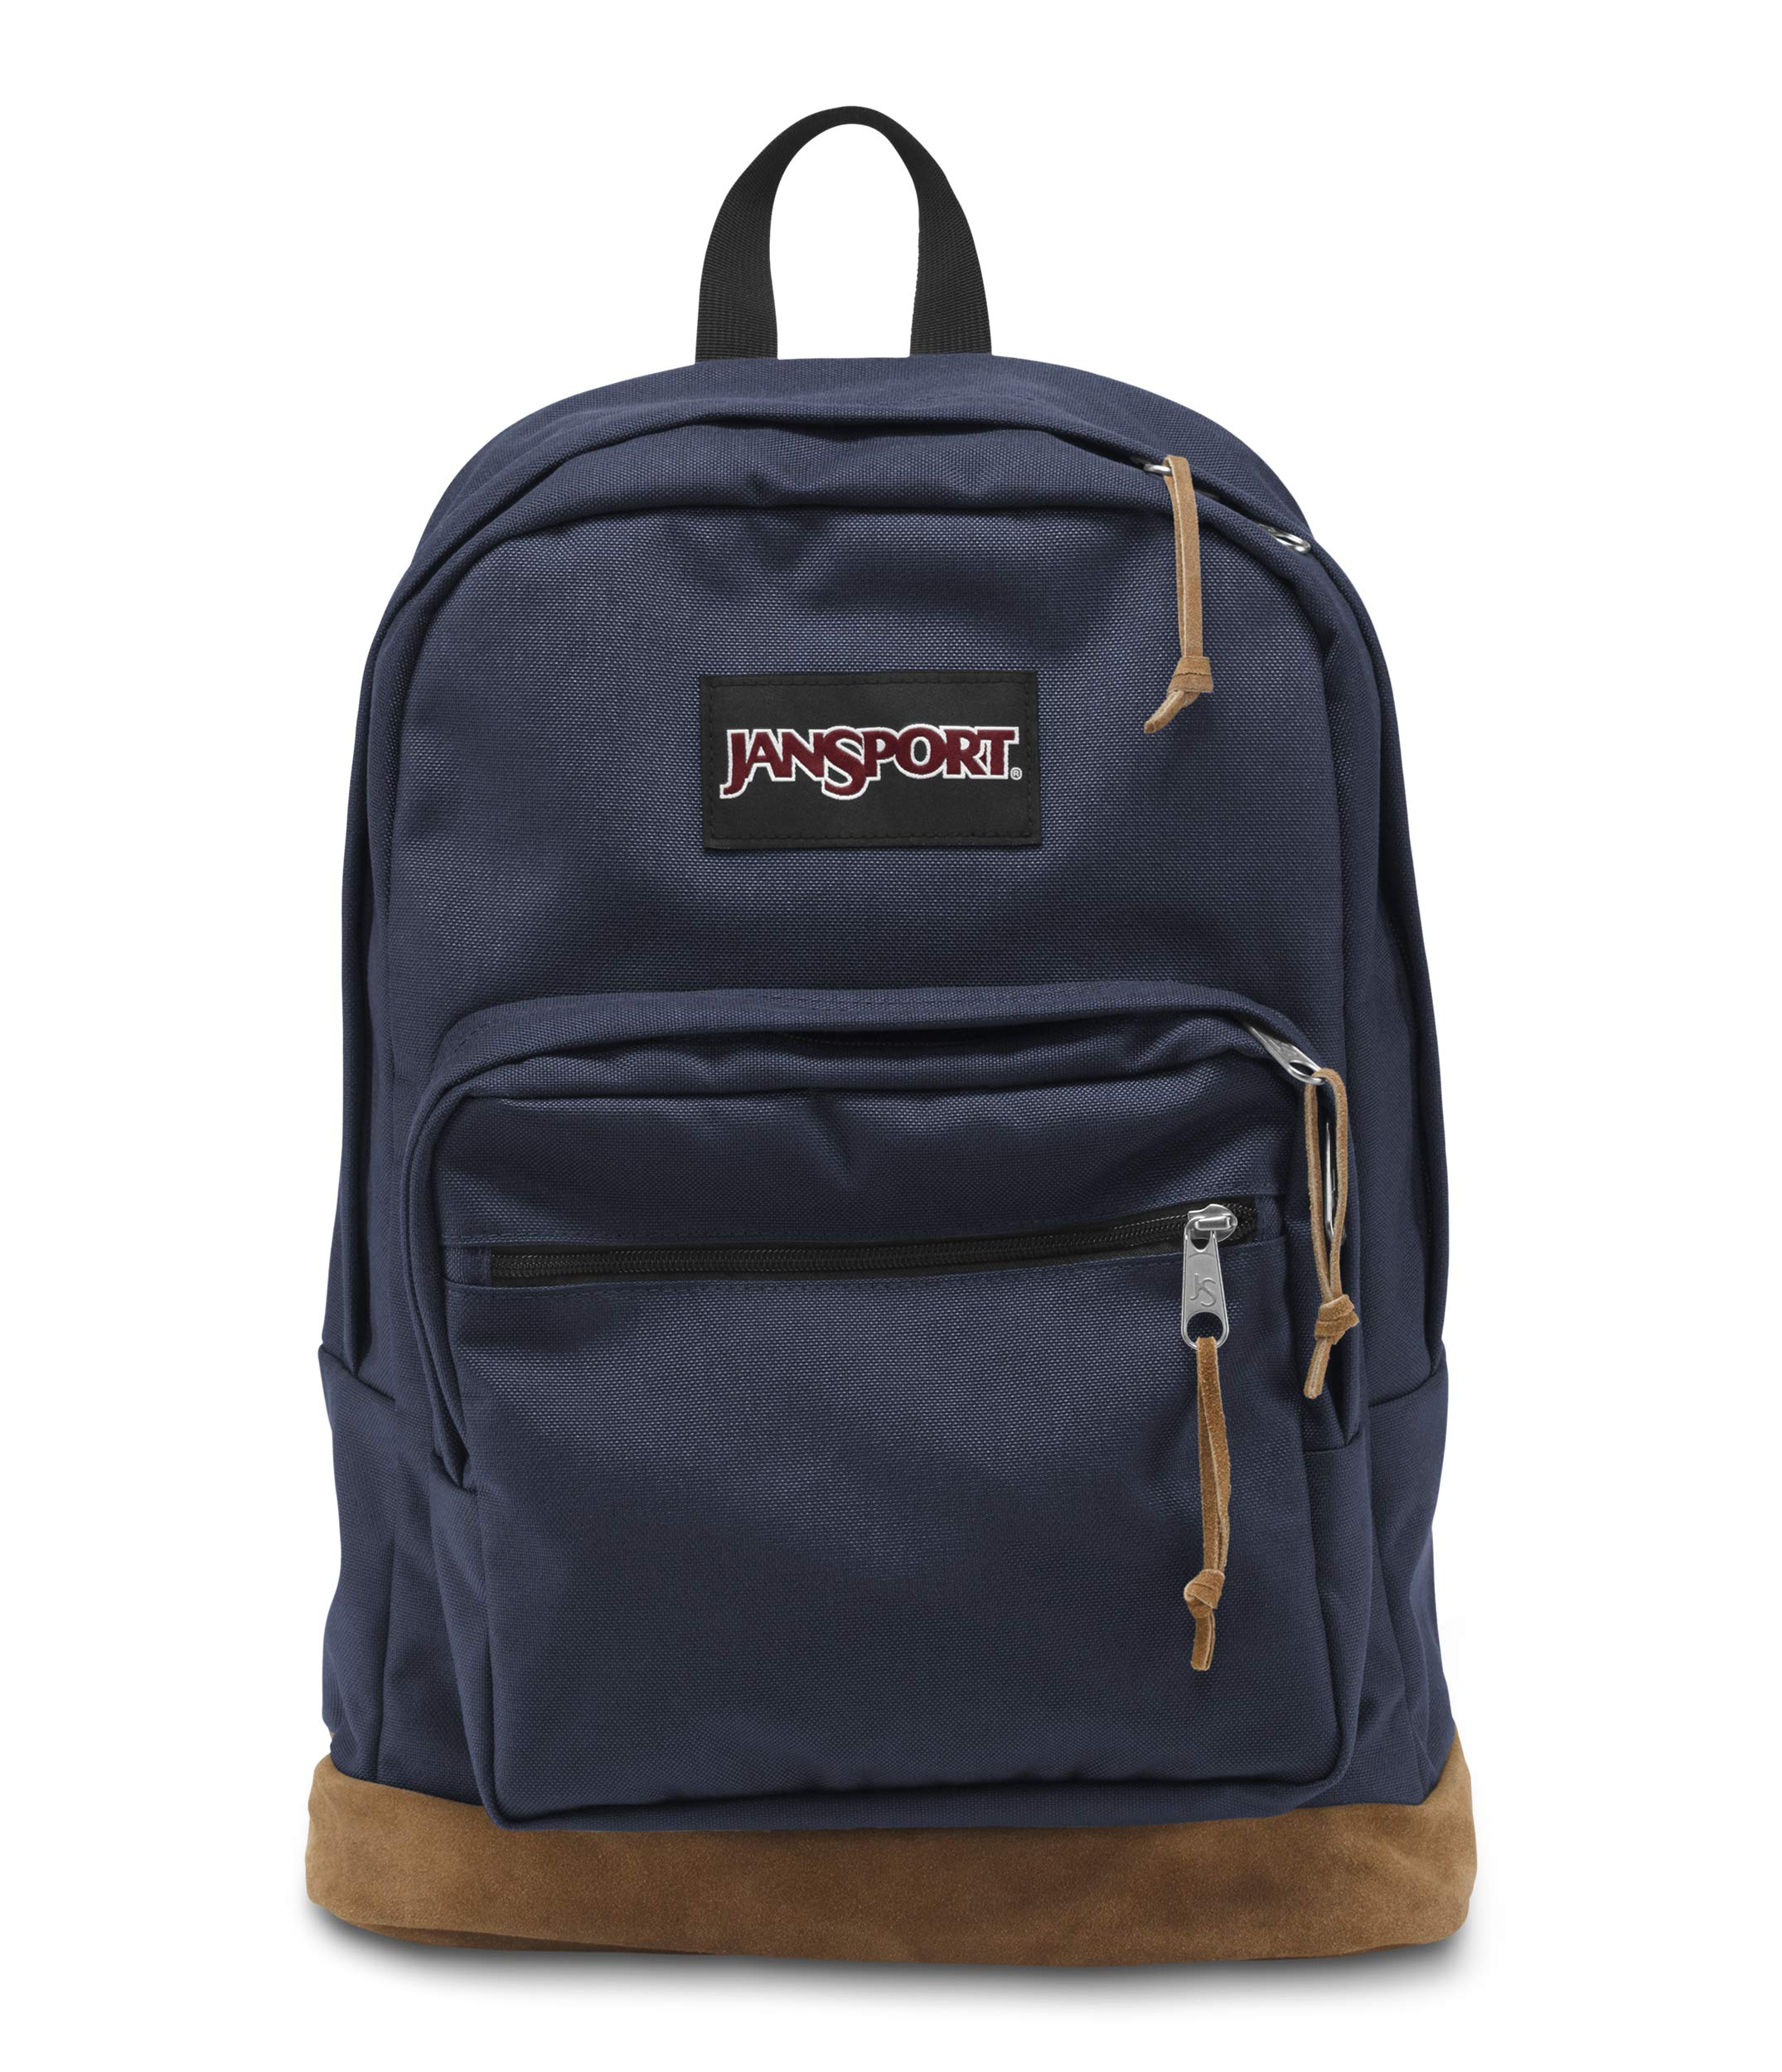 Right Pack Backpack - School, Travel, Work, or Laptop Bookbag with Leather Bottom (Navy)